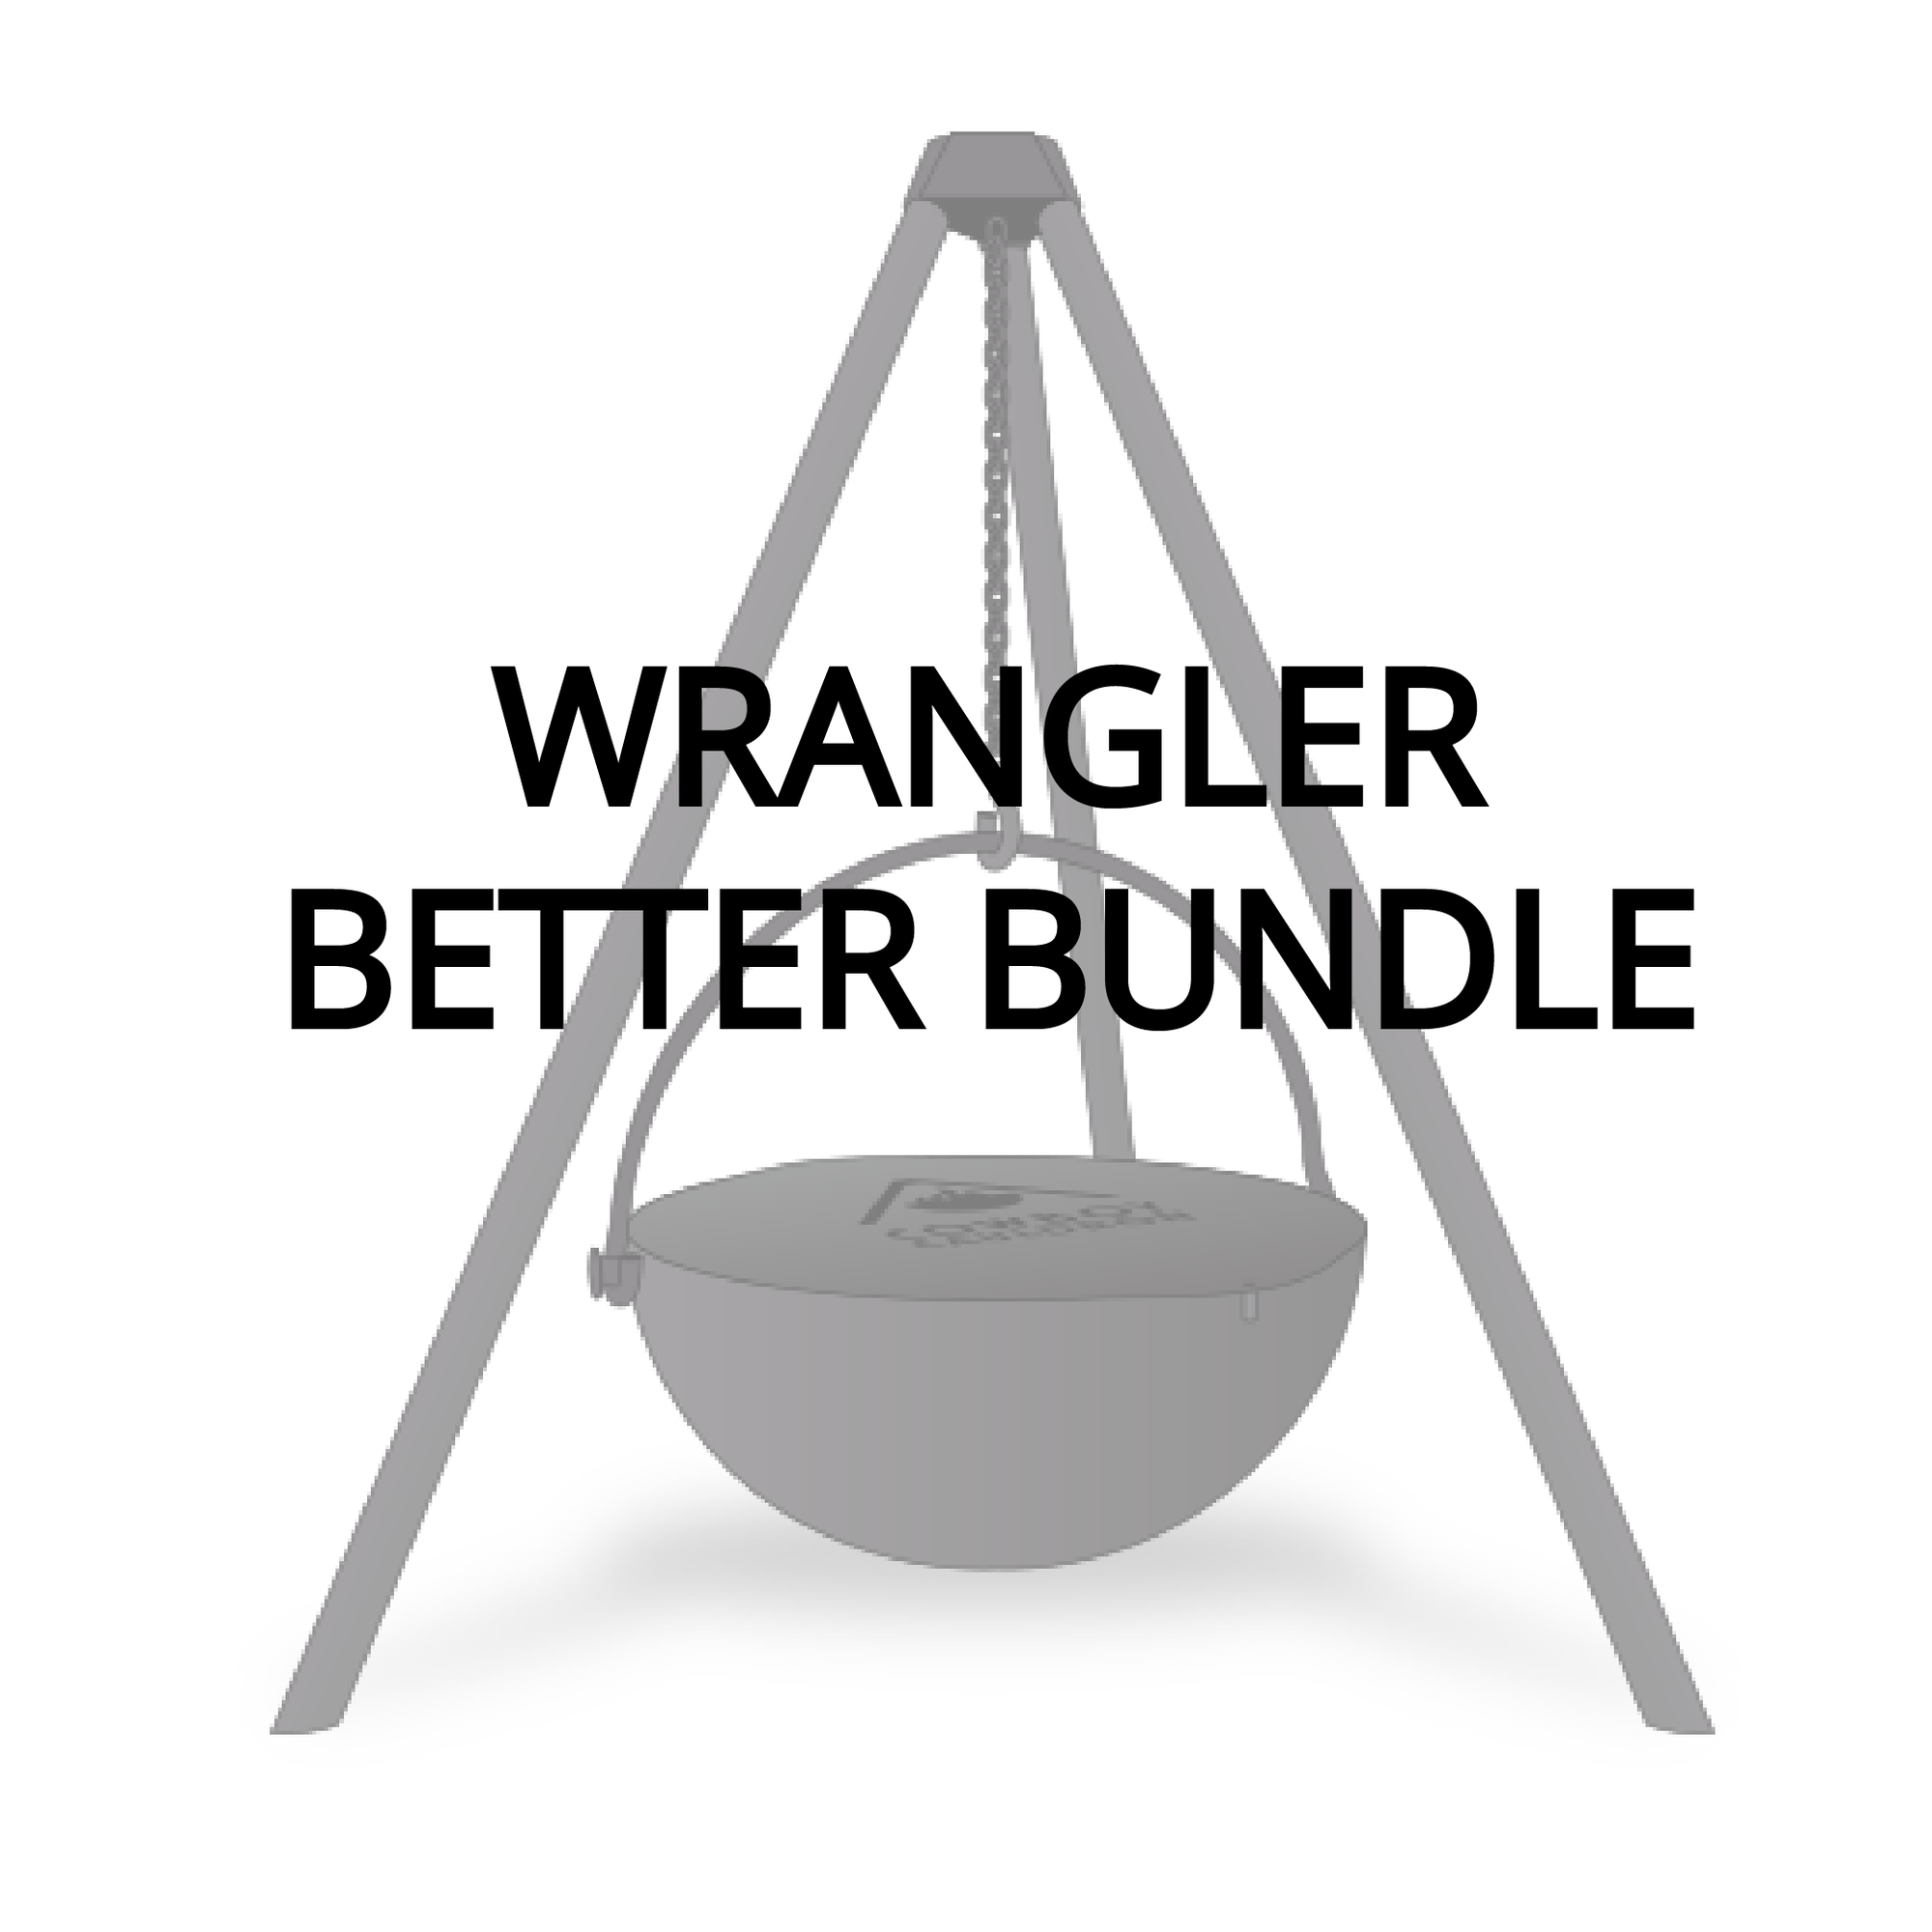 The Wrangler - Better Bundle